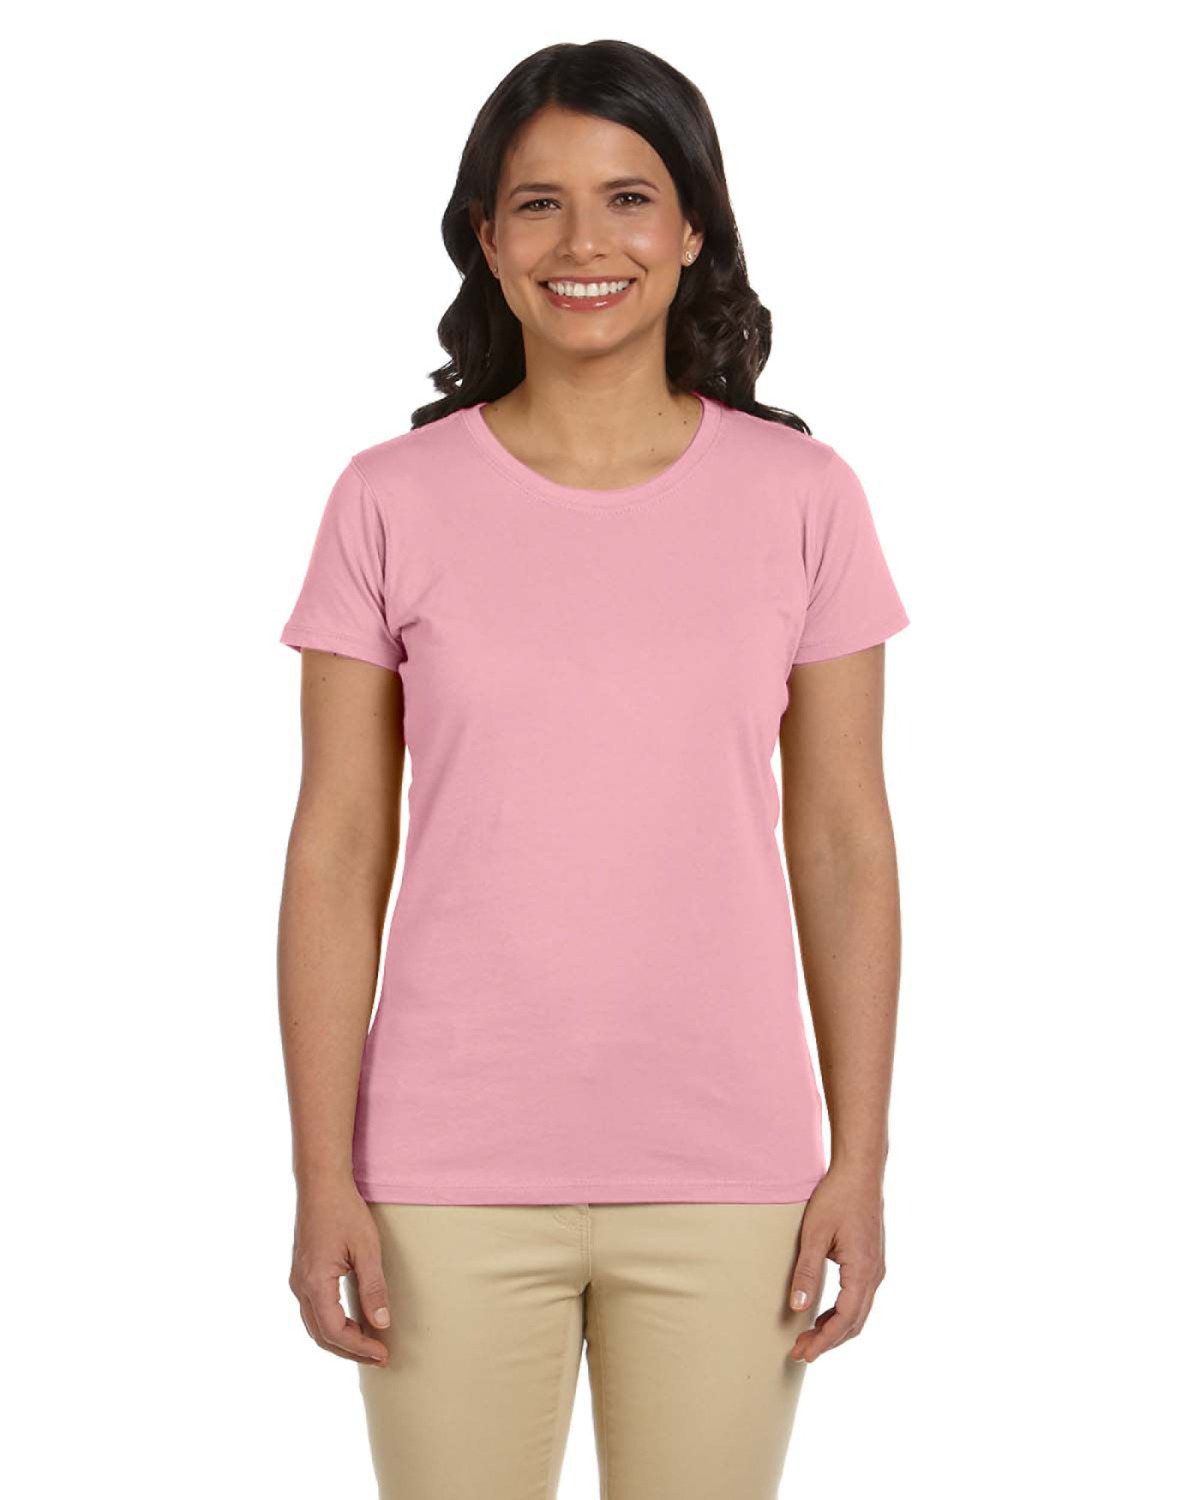 Shop S&S Activewear for T-Shirts, Short, Sleeves, Womens, and earn free shipping with orders over $ One and two-day shipping options available.